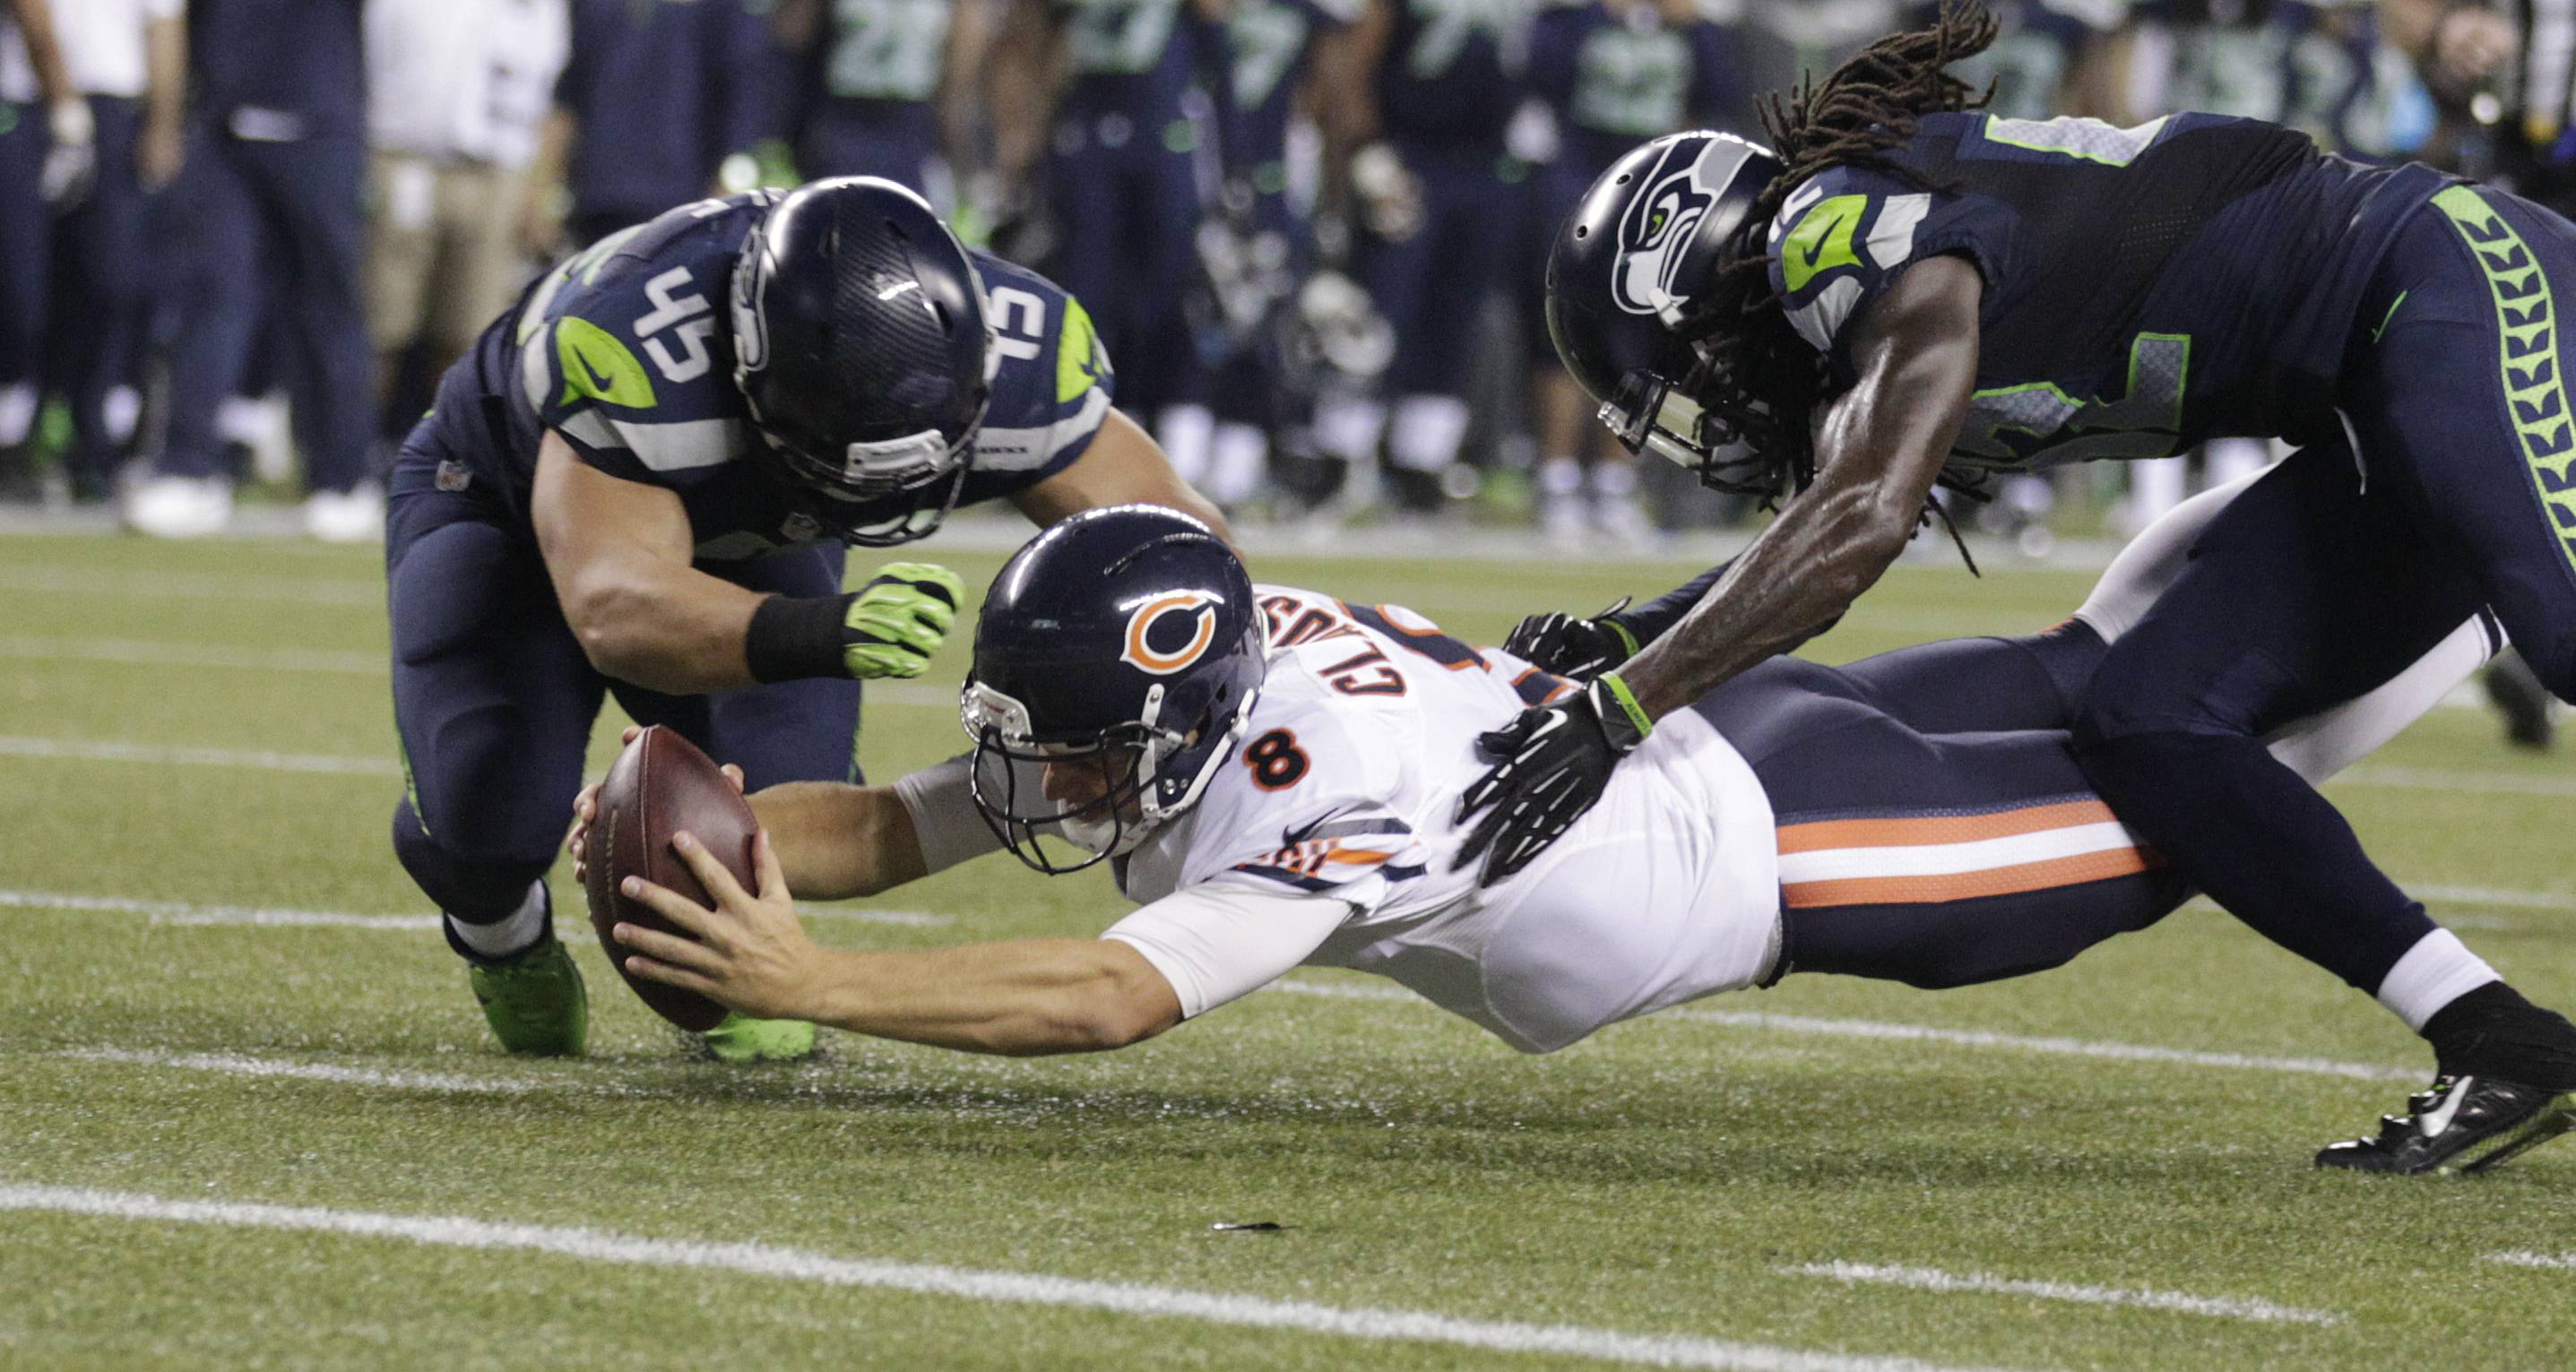 Bears quarterback Jimmy Clausen, falling just short of the goal line in Friday's loss at Seattle, came up the winner in the battle to back up Jay Cutler.